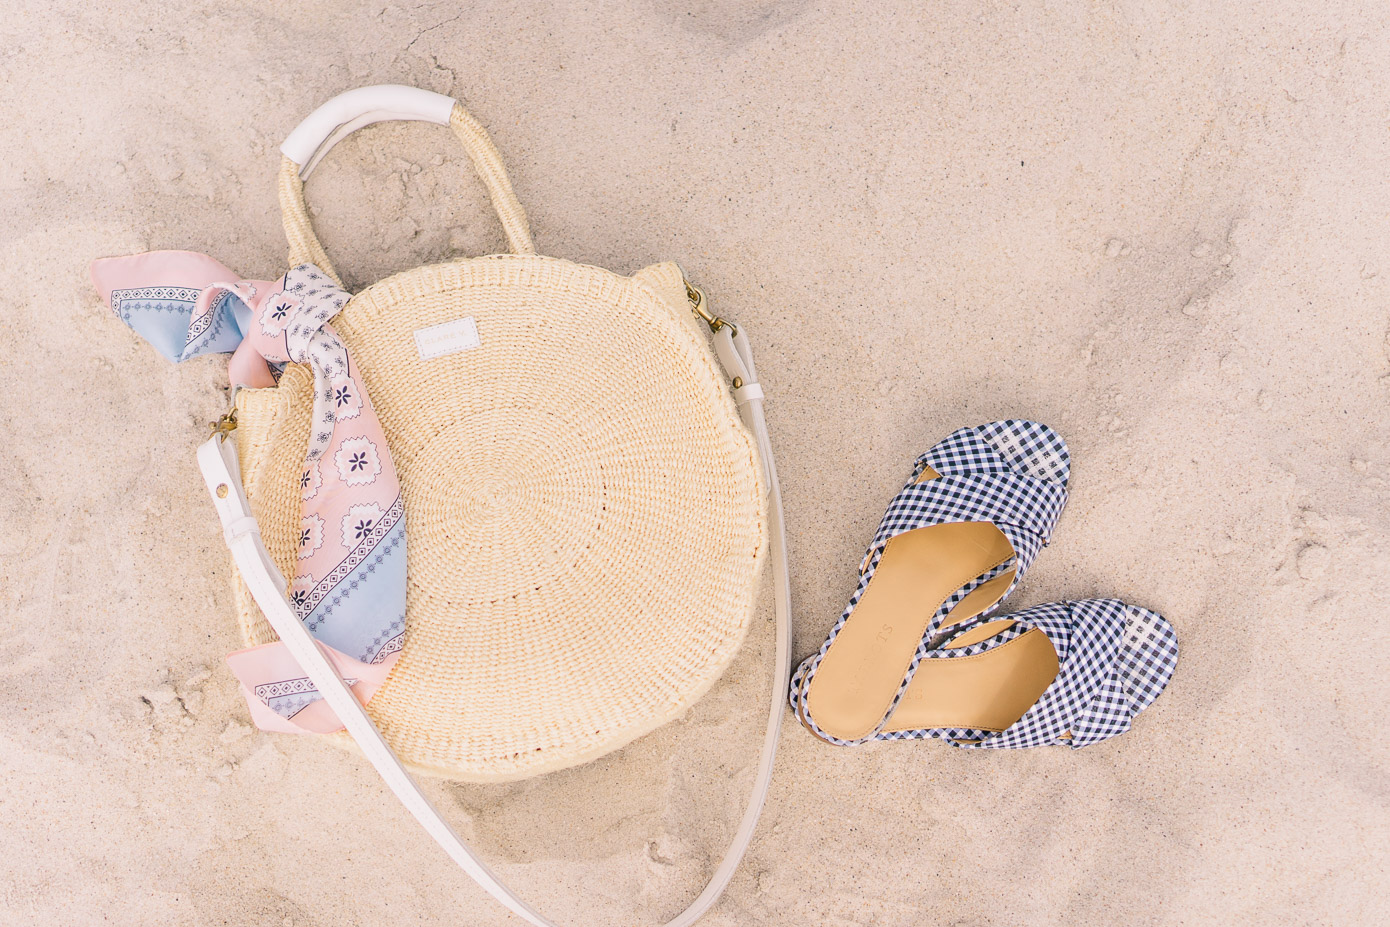 Clare V. Alice Straw Tote + Gingham Sandals | Louella Reese Life & Style Blog